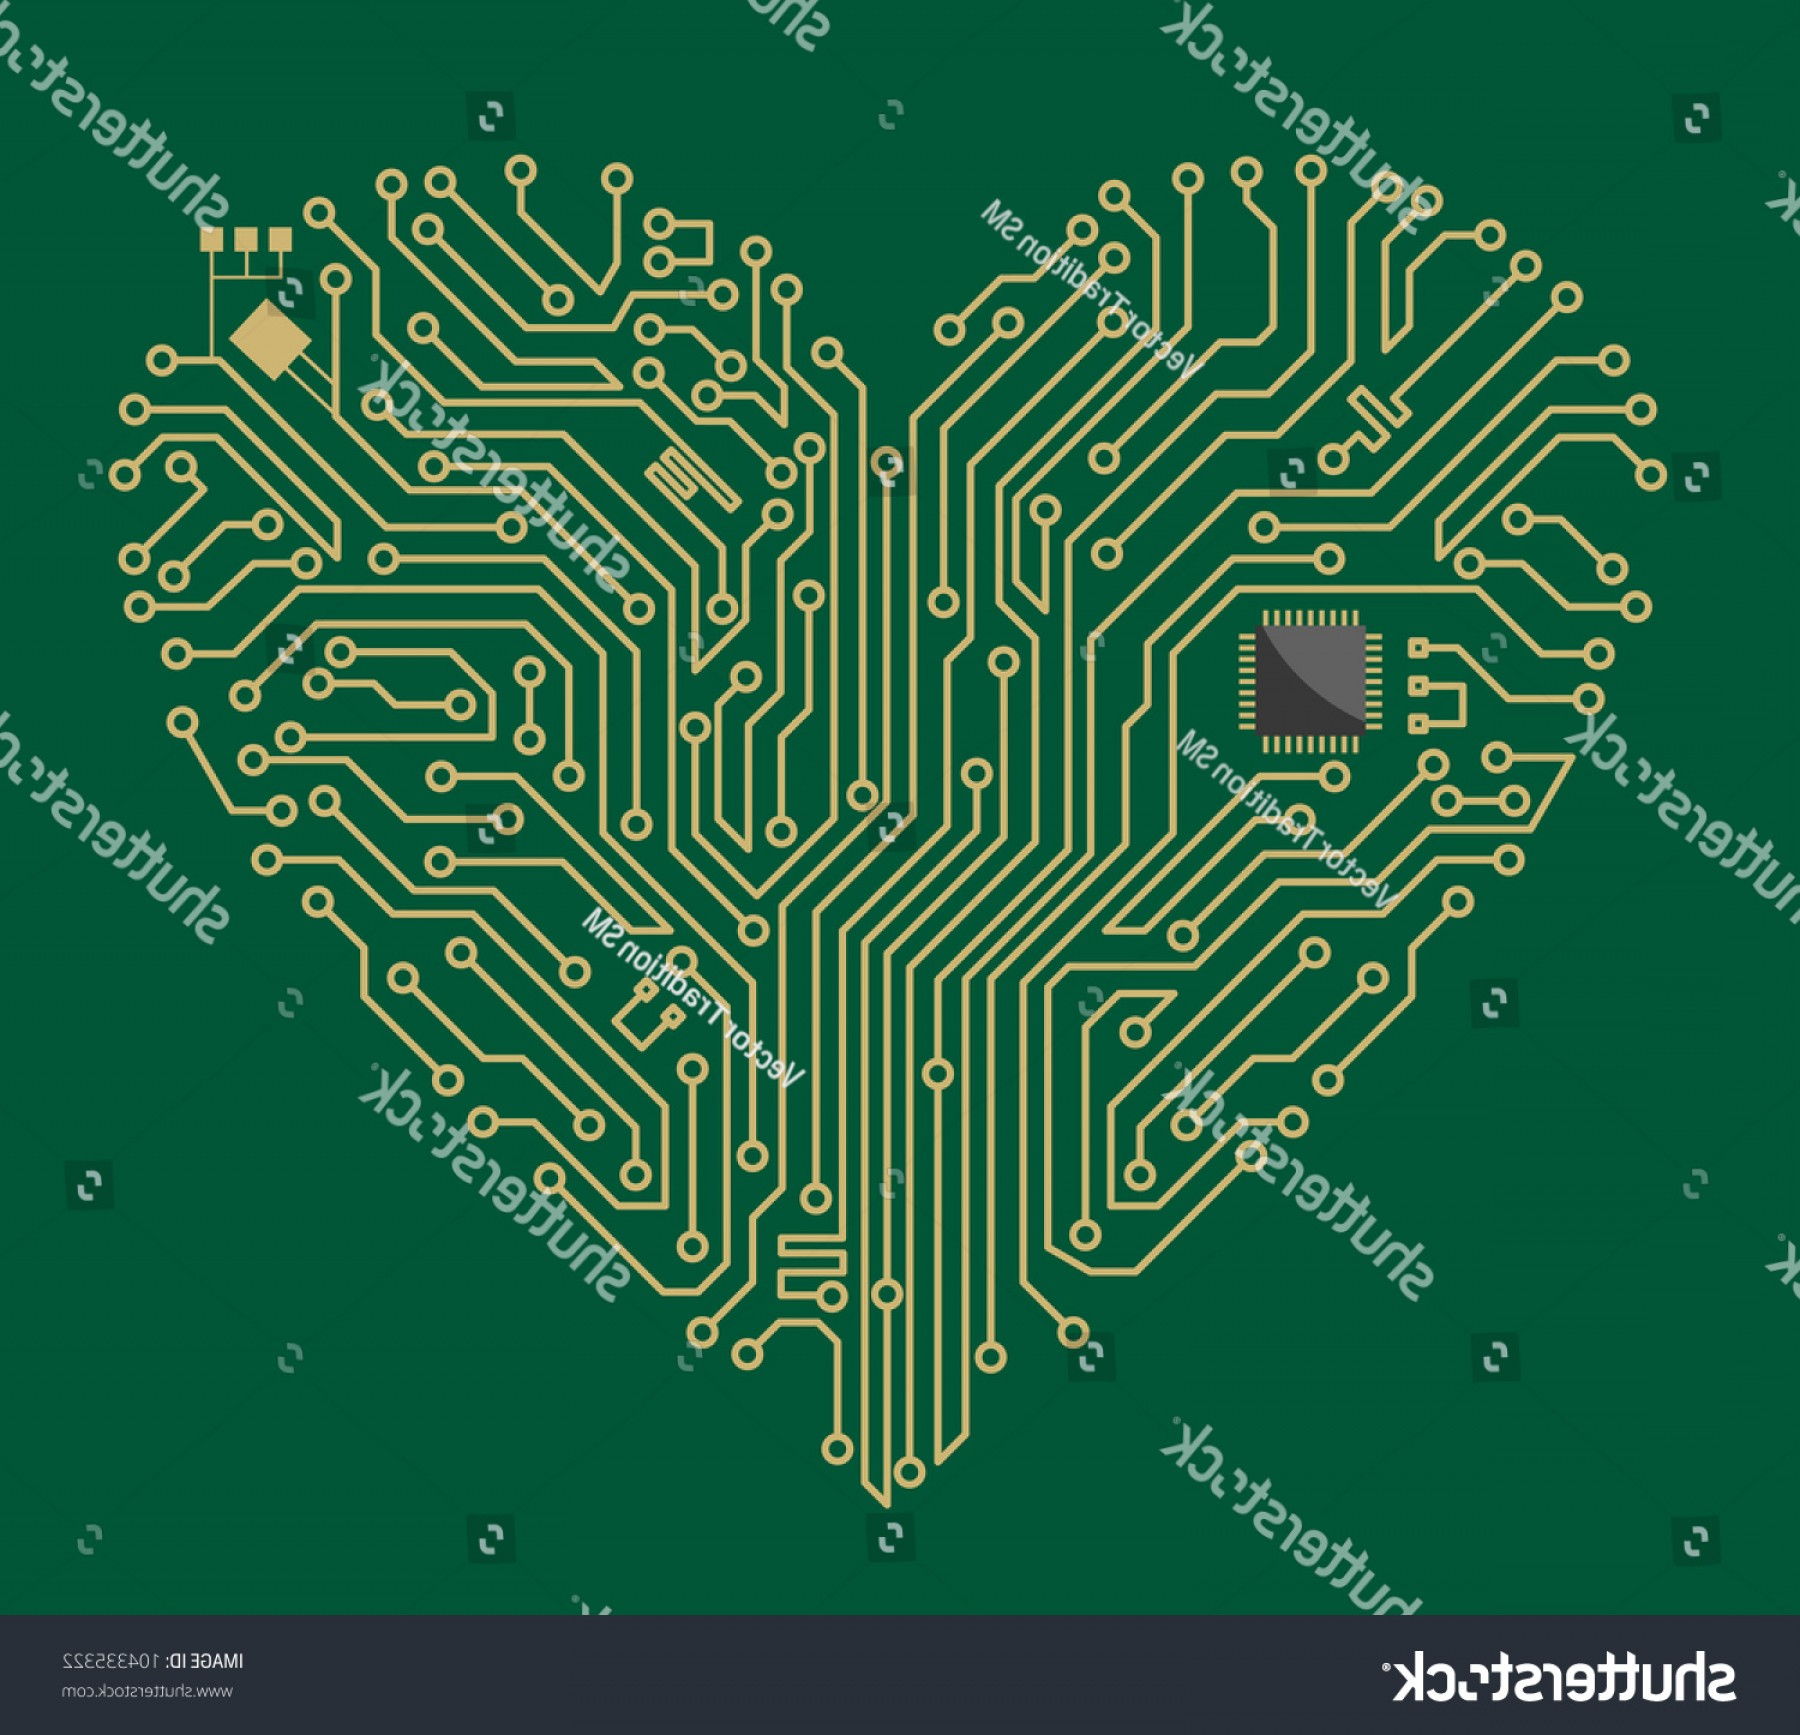 Motherboard Vector With A Heart: Shutterstock Motherboard Computer Heart For Love